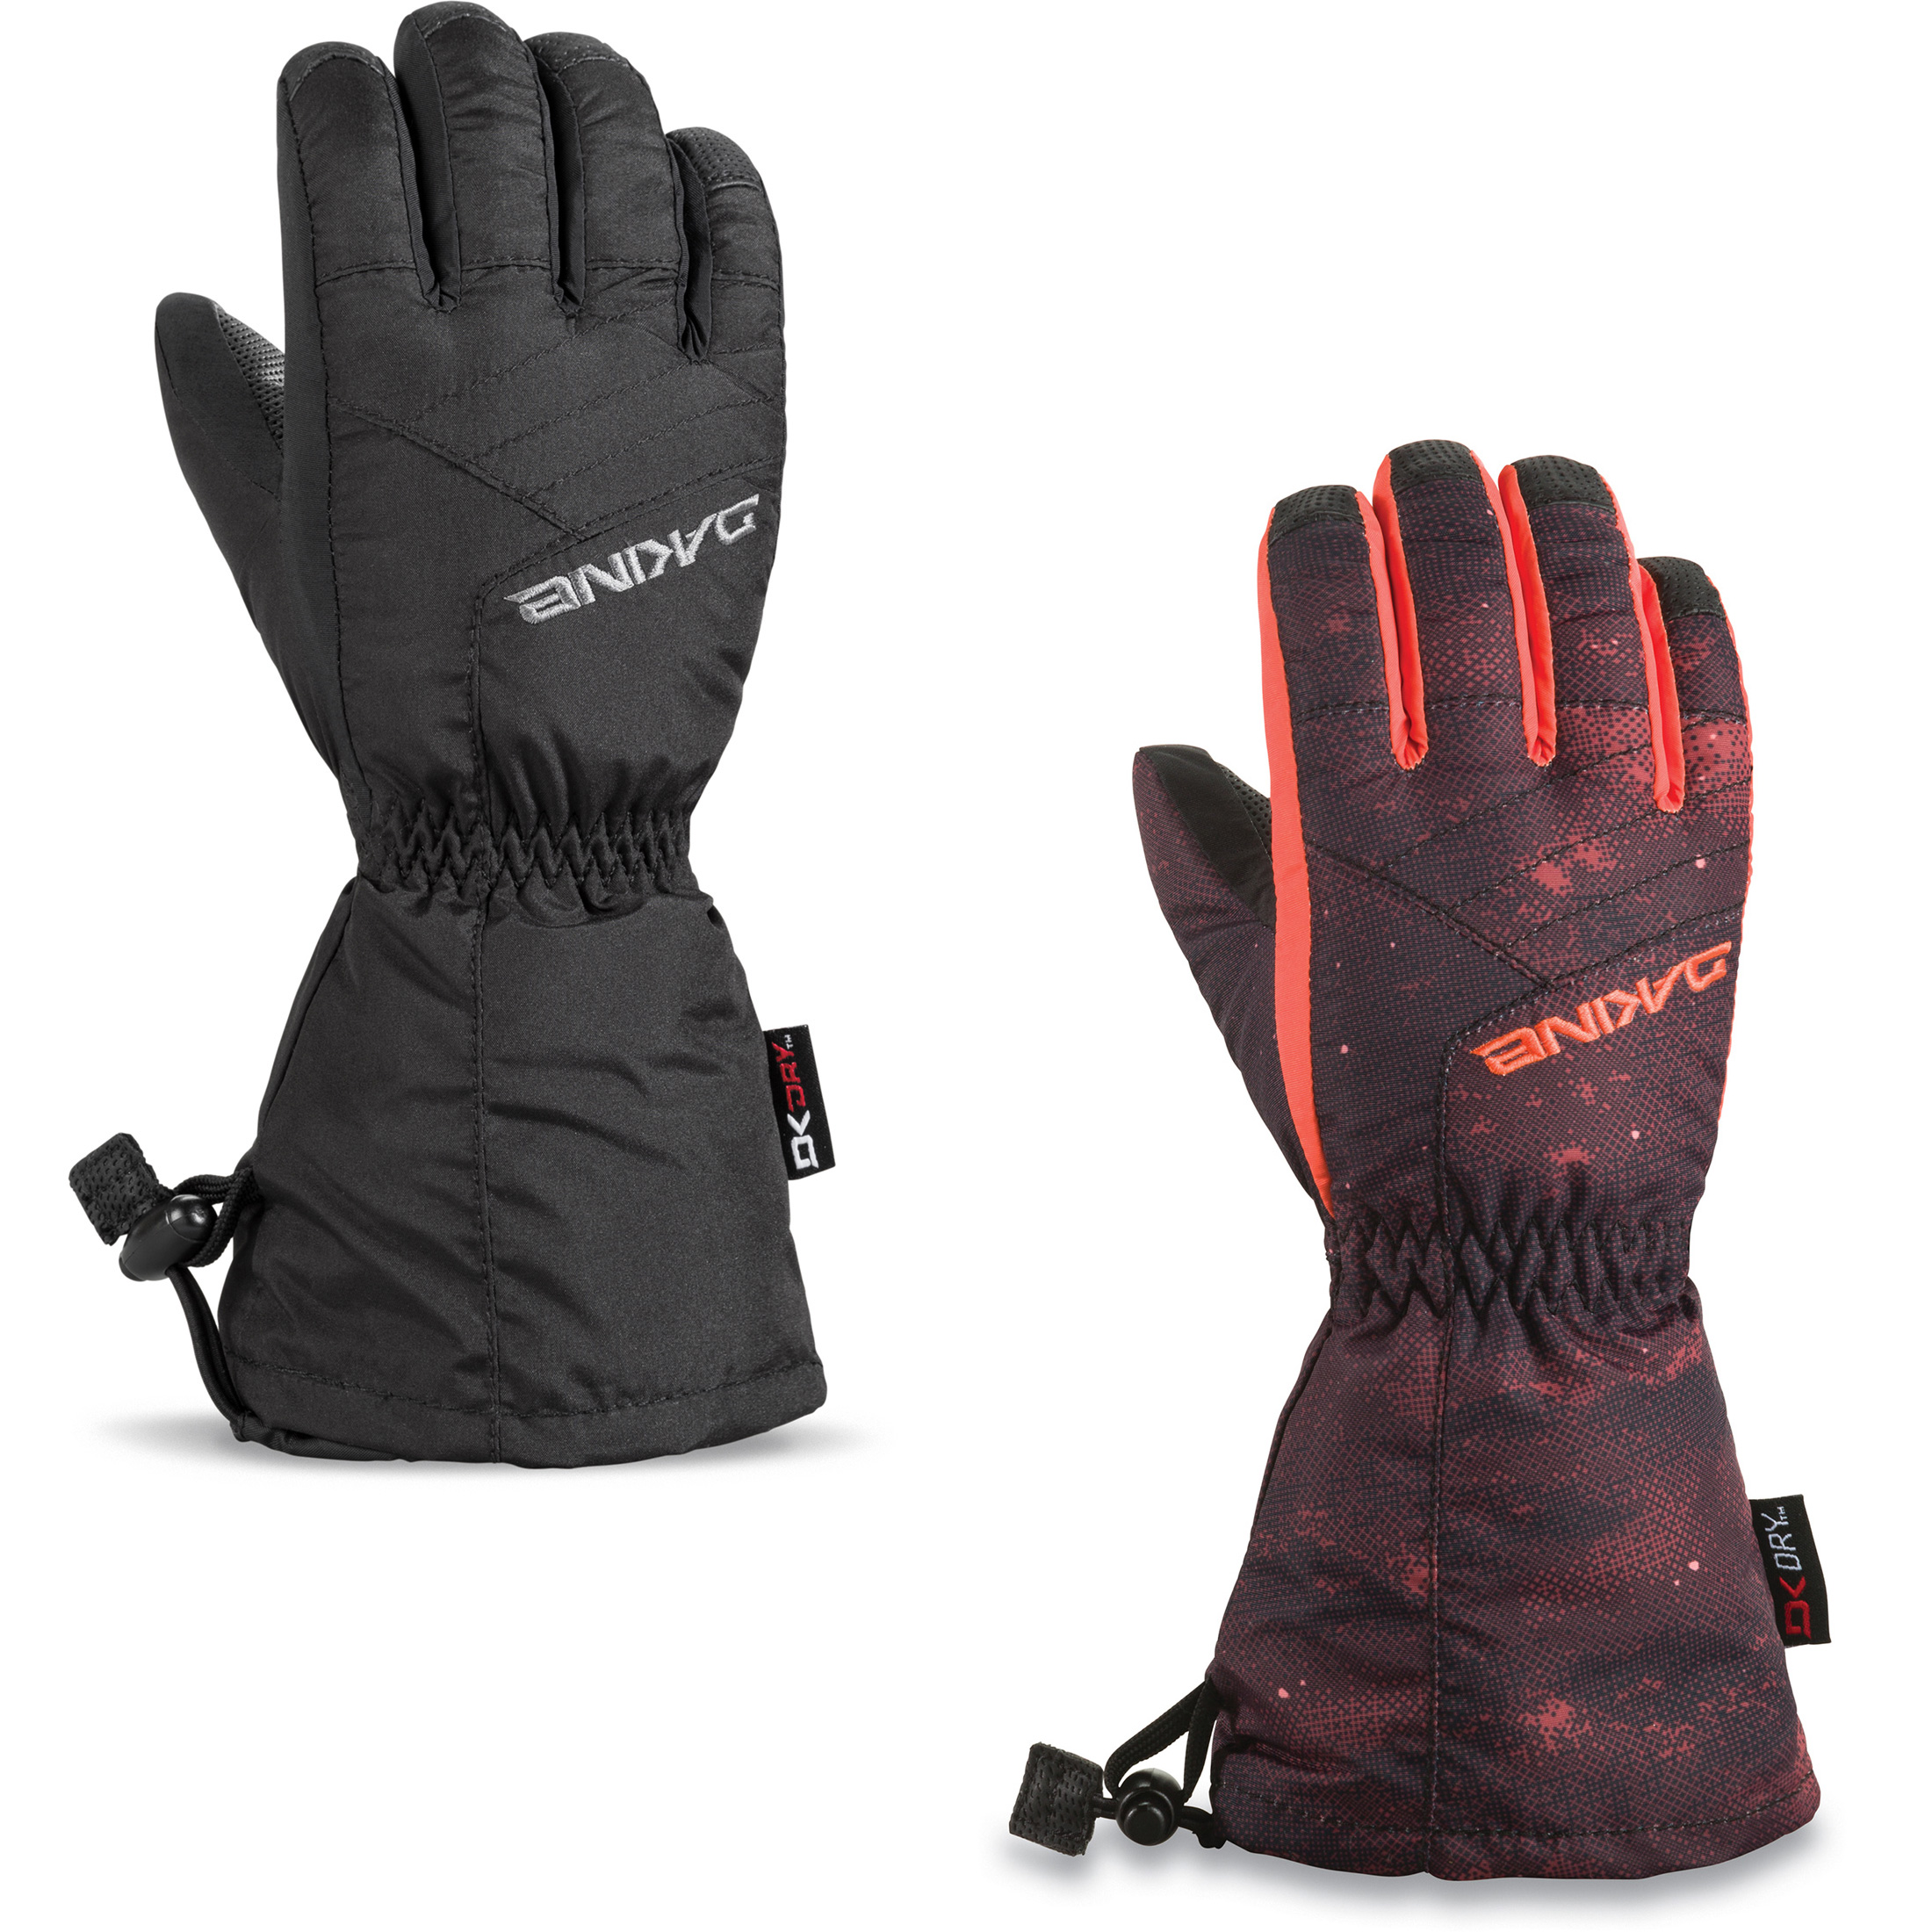 63a3aae33ffb Dakine Gloves - Kids Tracker - Ski